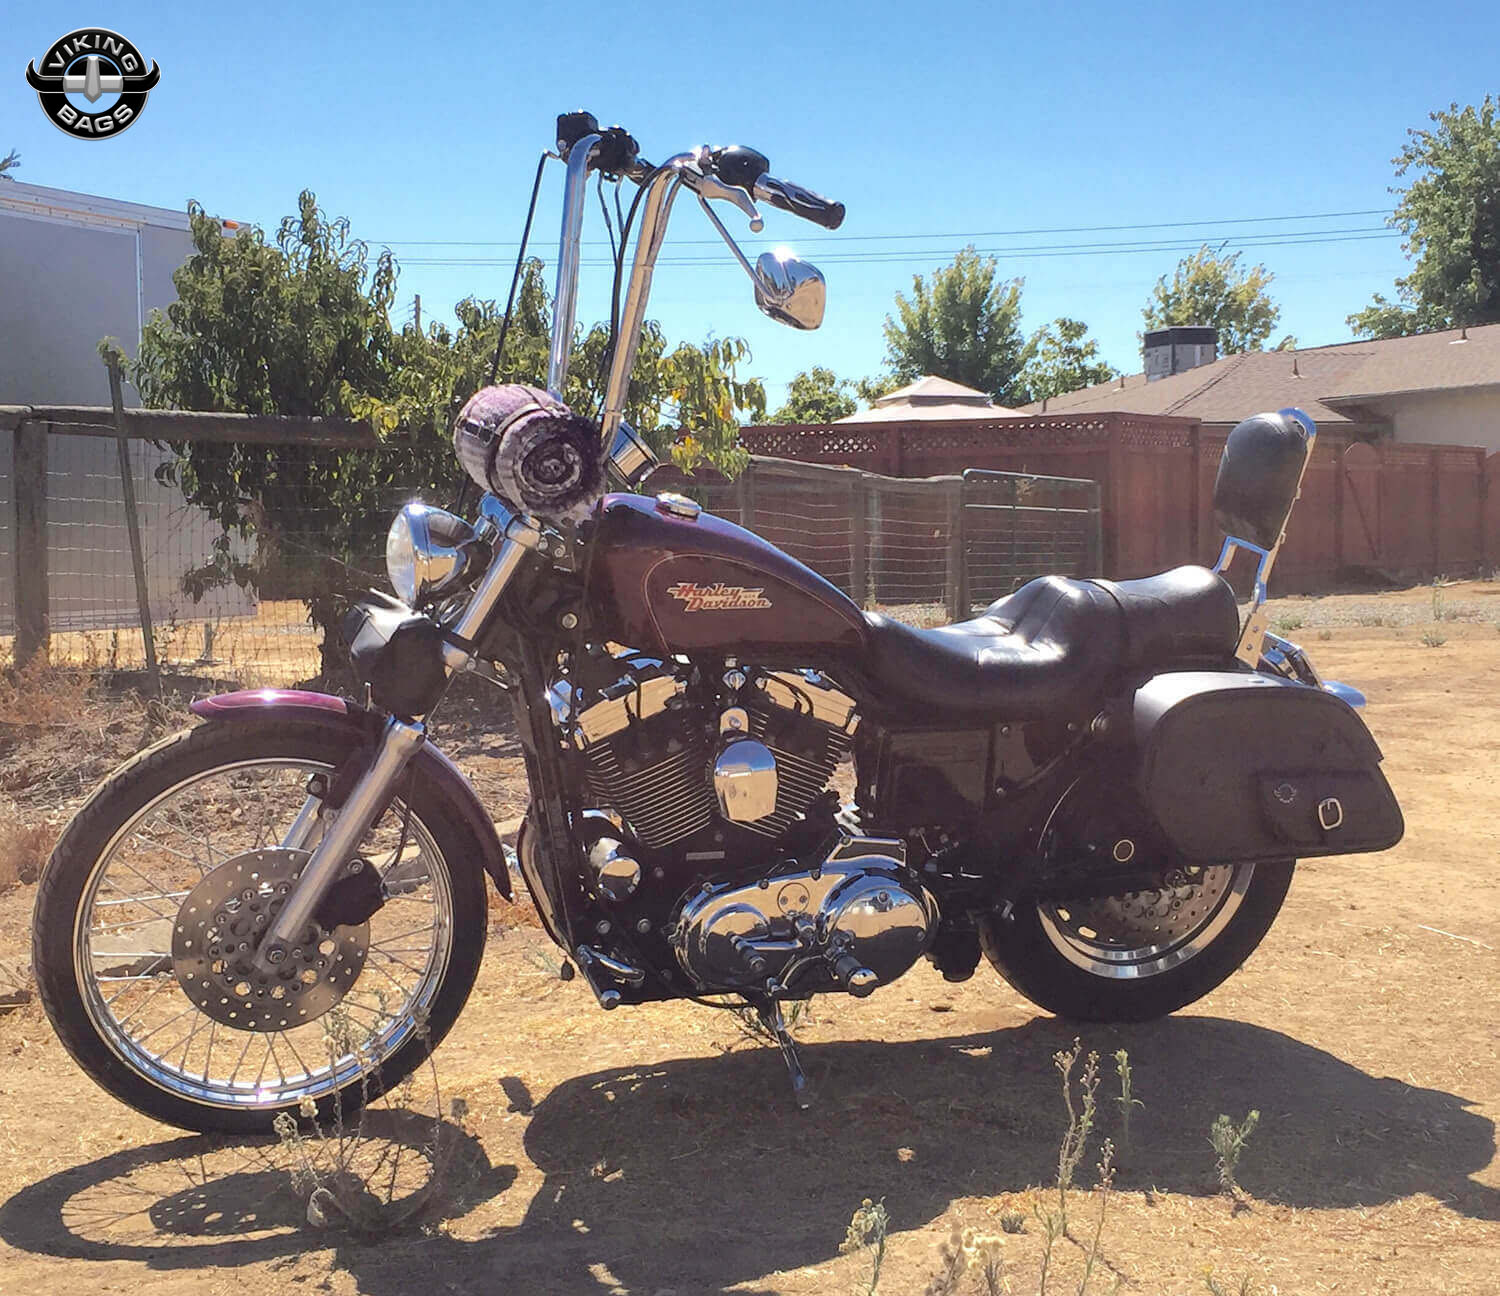 08 Nightster Harley Davidson Engine Diagram Wiring Libraries Custom Evo Motor Librarymatu0027s Sportster 1200 W